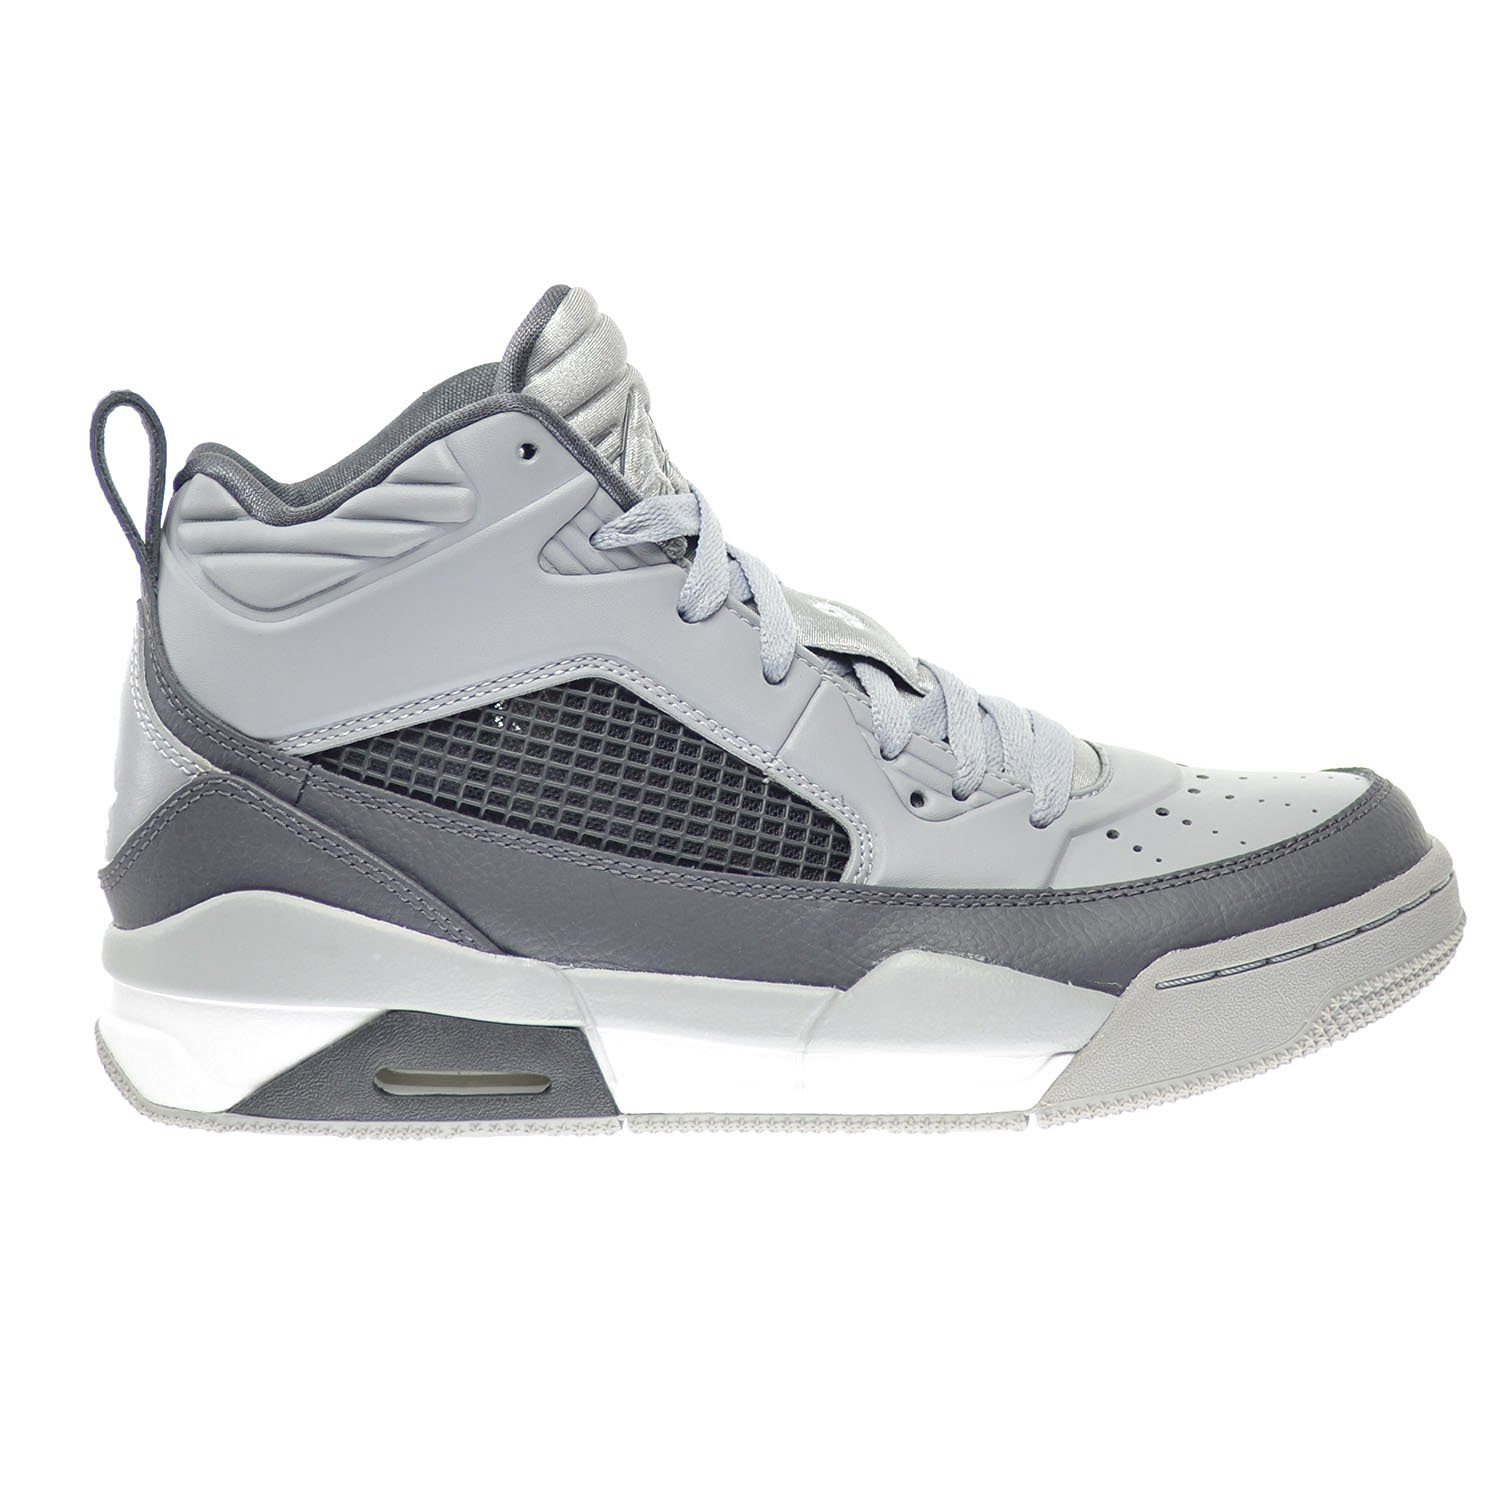 2679f3a66a2aac Get Quotations · Jordan Flight 9.5 BG Big Kids Shoes Wolf Grey White-Dark  Grey 654975-